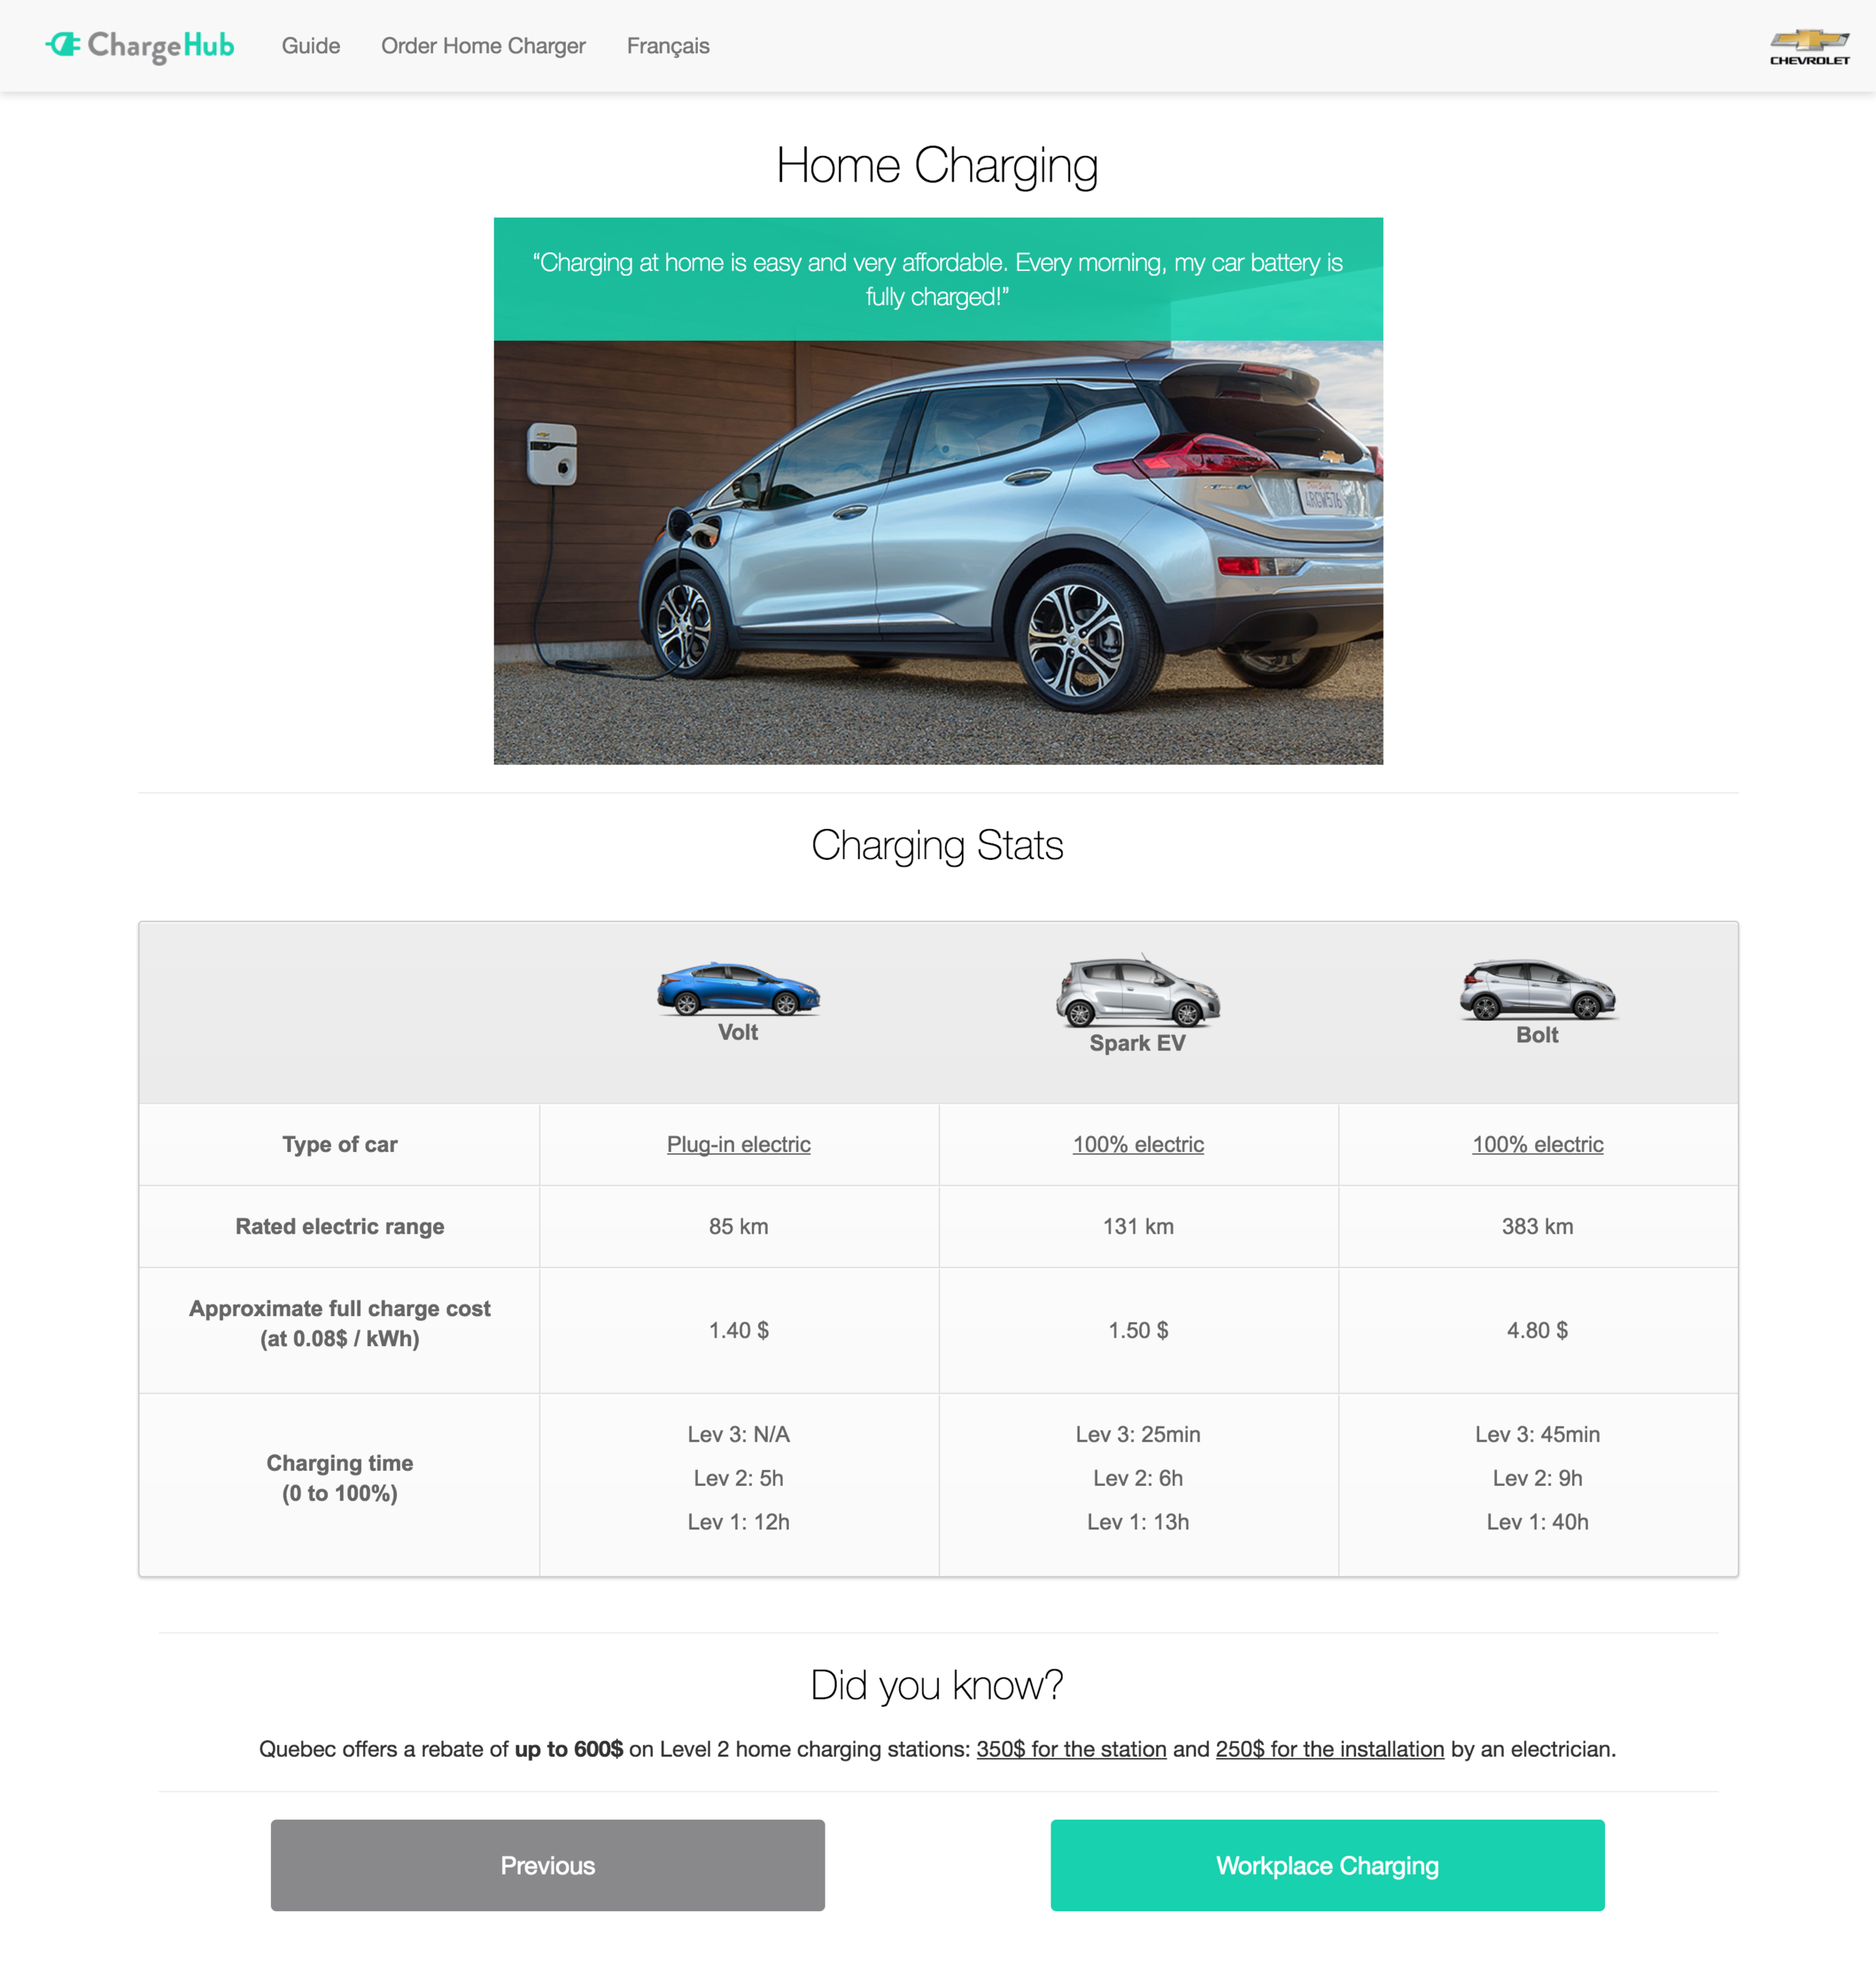 screencapture-chevrolet-chargehub-en-qc-home-charging-html-1497290564817.png